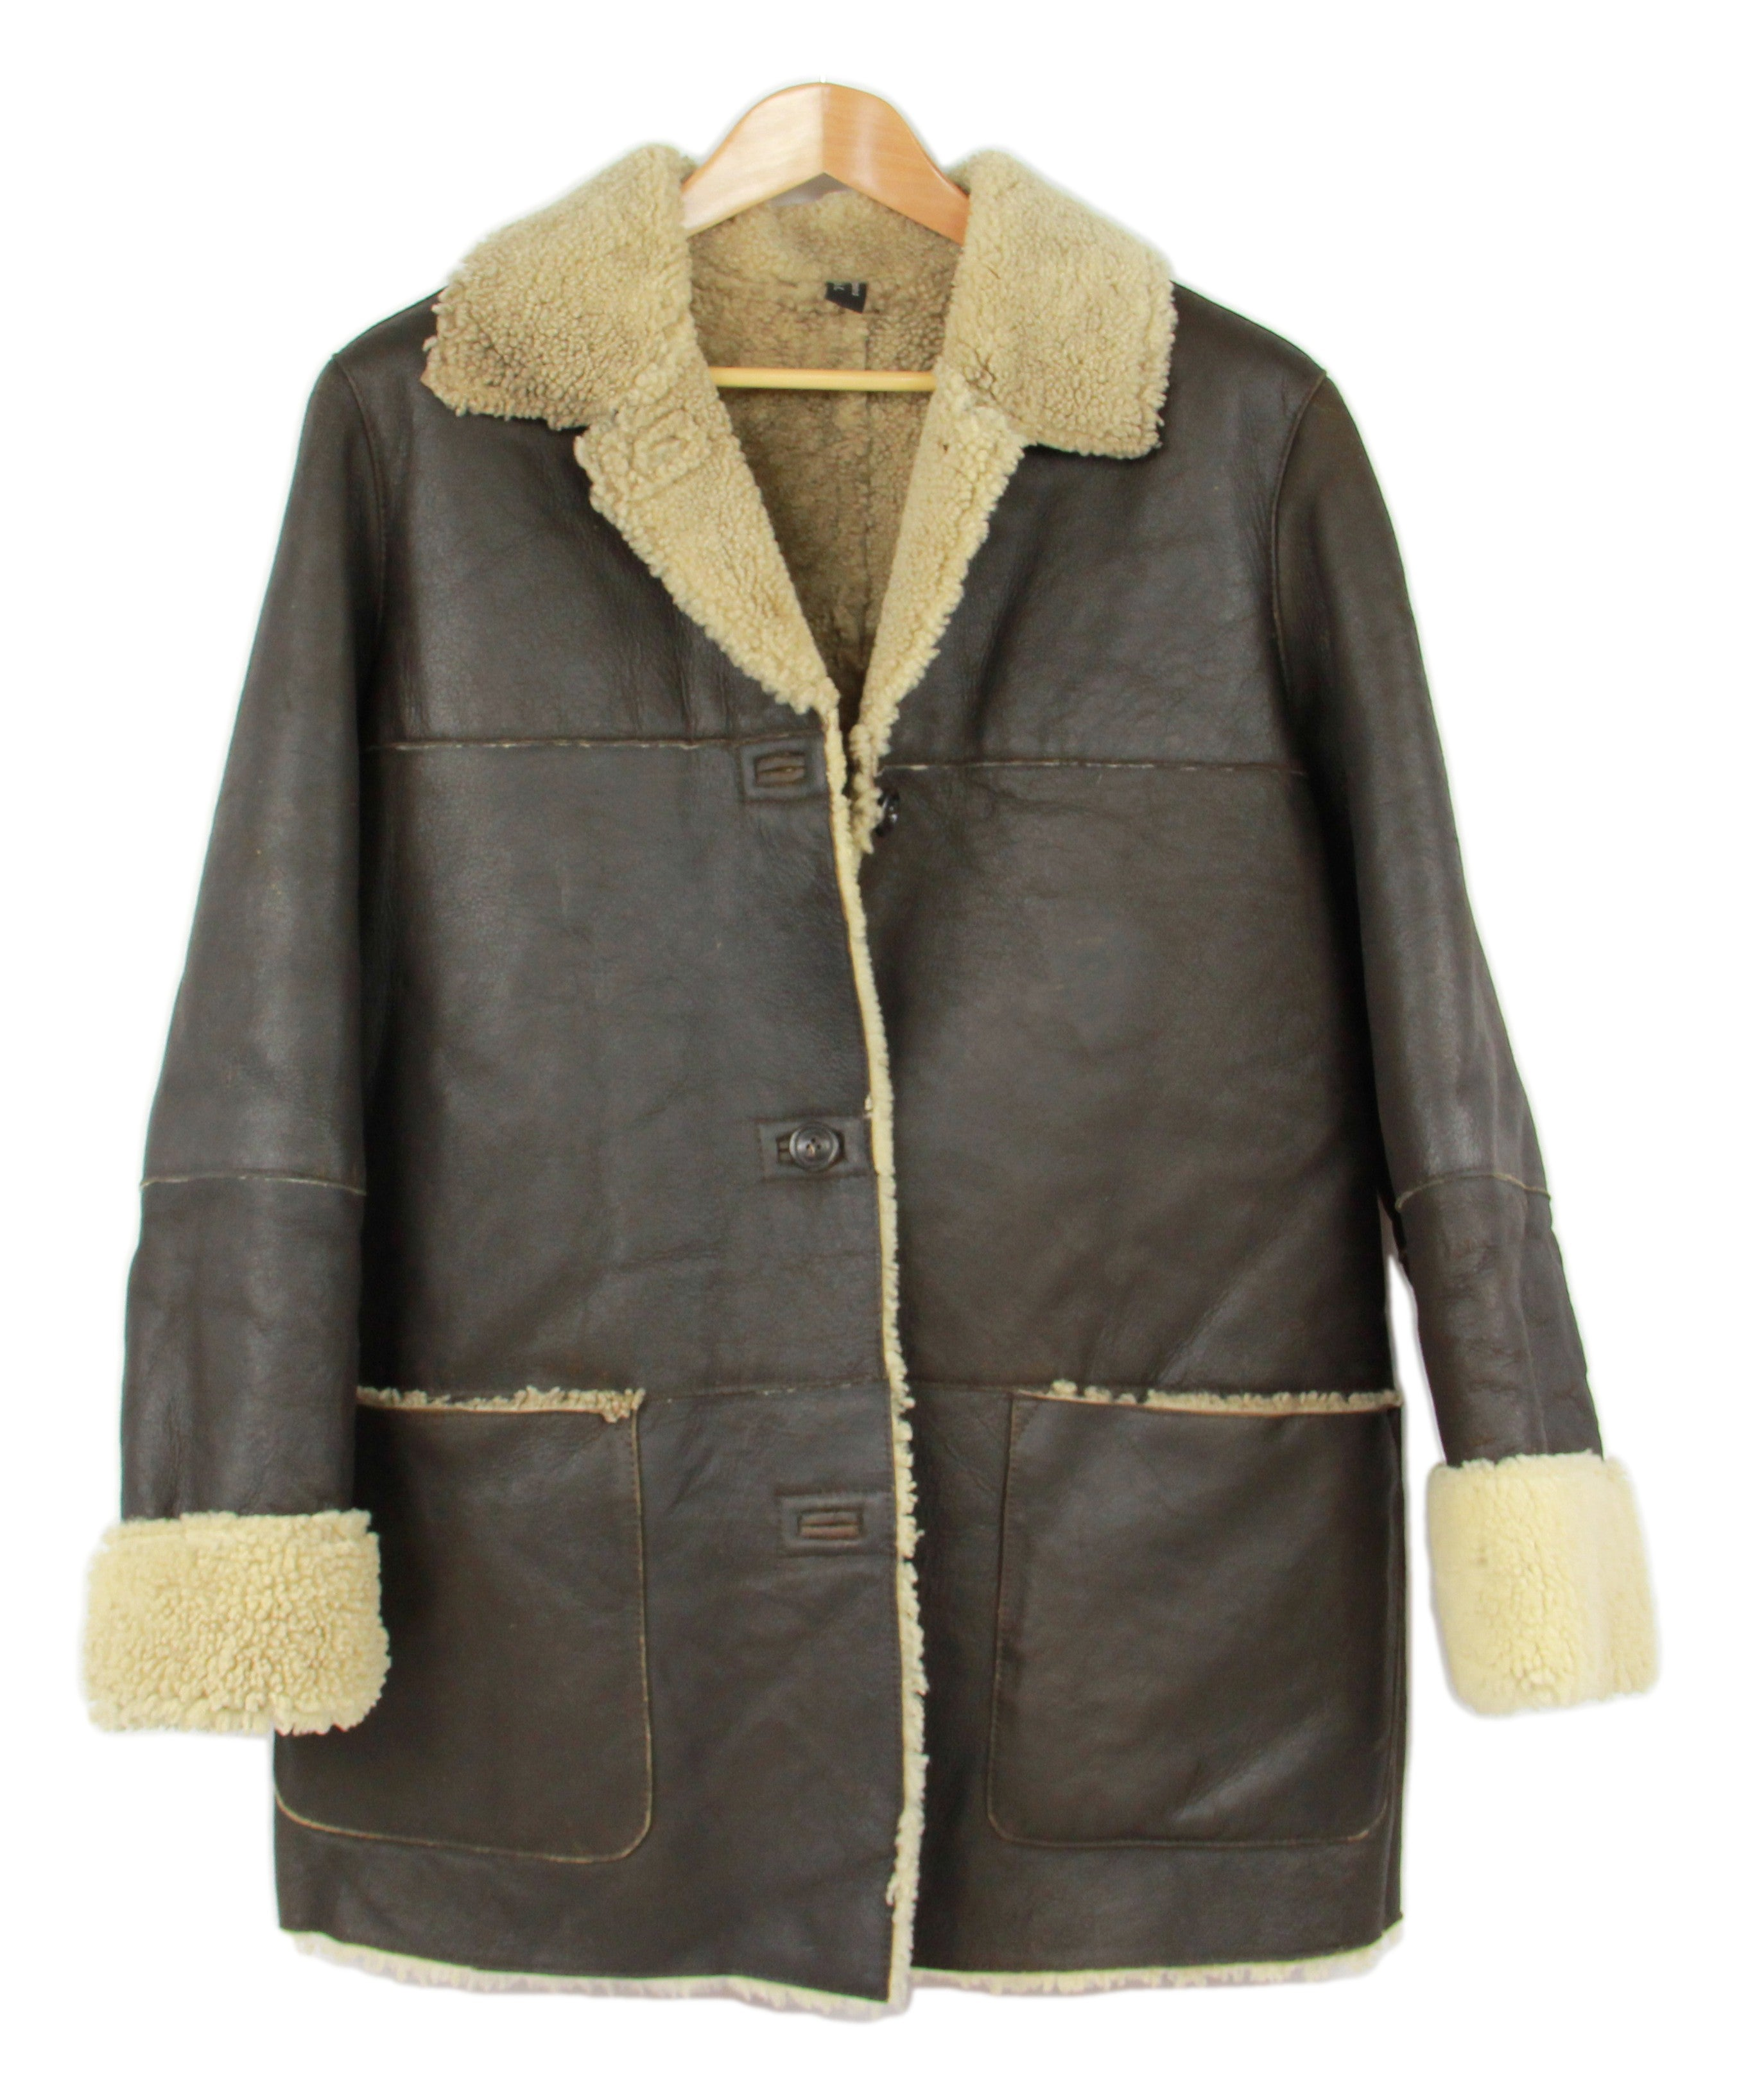 Women's Brown Lambskin Leather Shearling Coat With Raw Edges, SIZE L